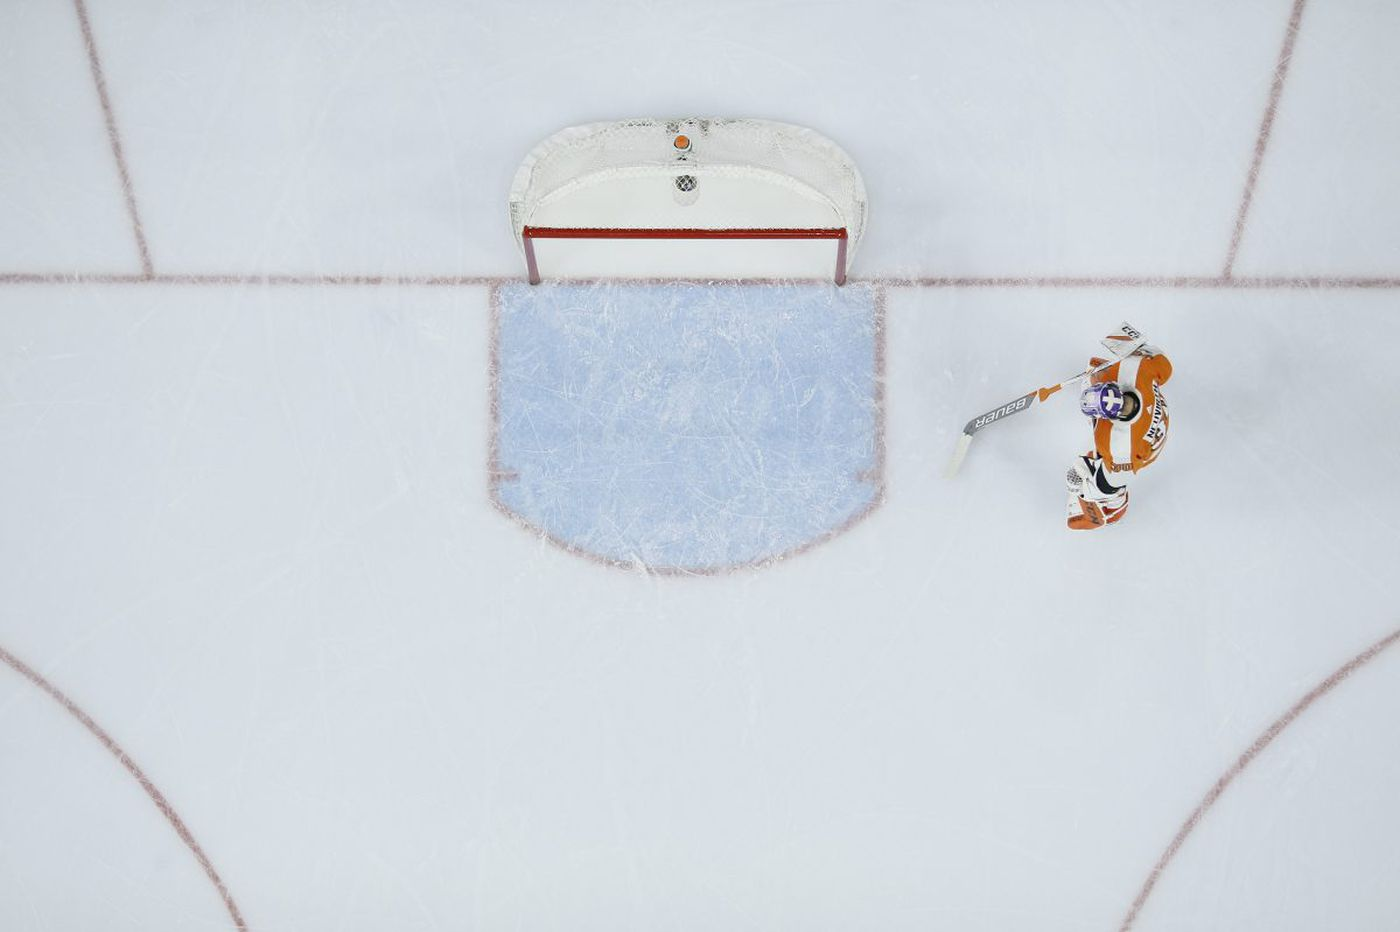 What, me worry? Ron Hextall, Dave Hakstol vow to calm Flyers storm | Sam Donnellon